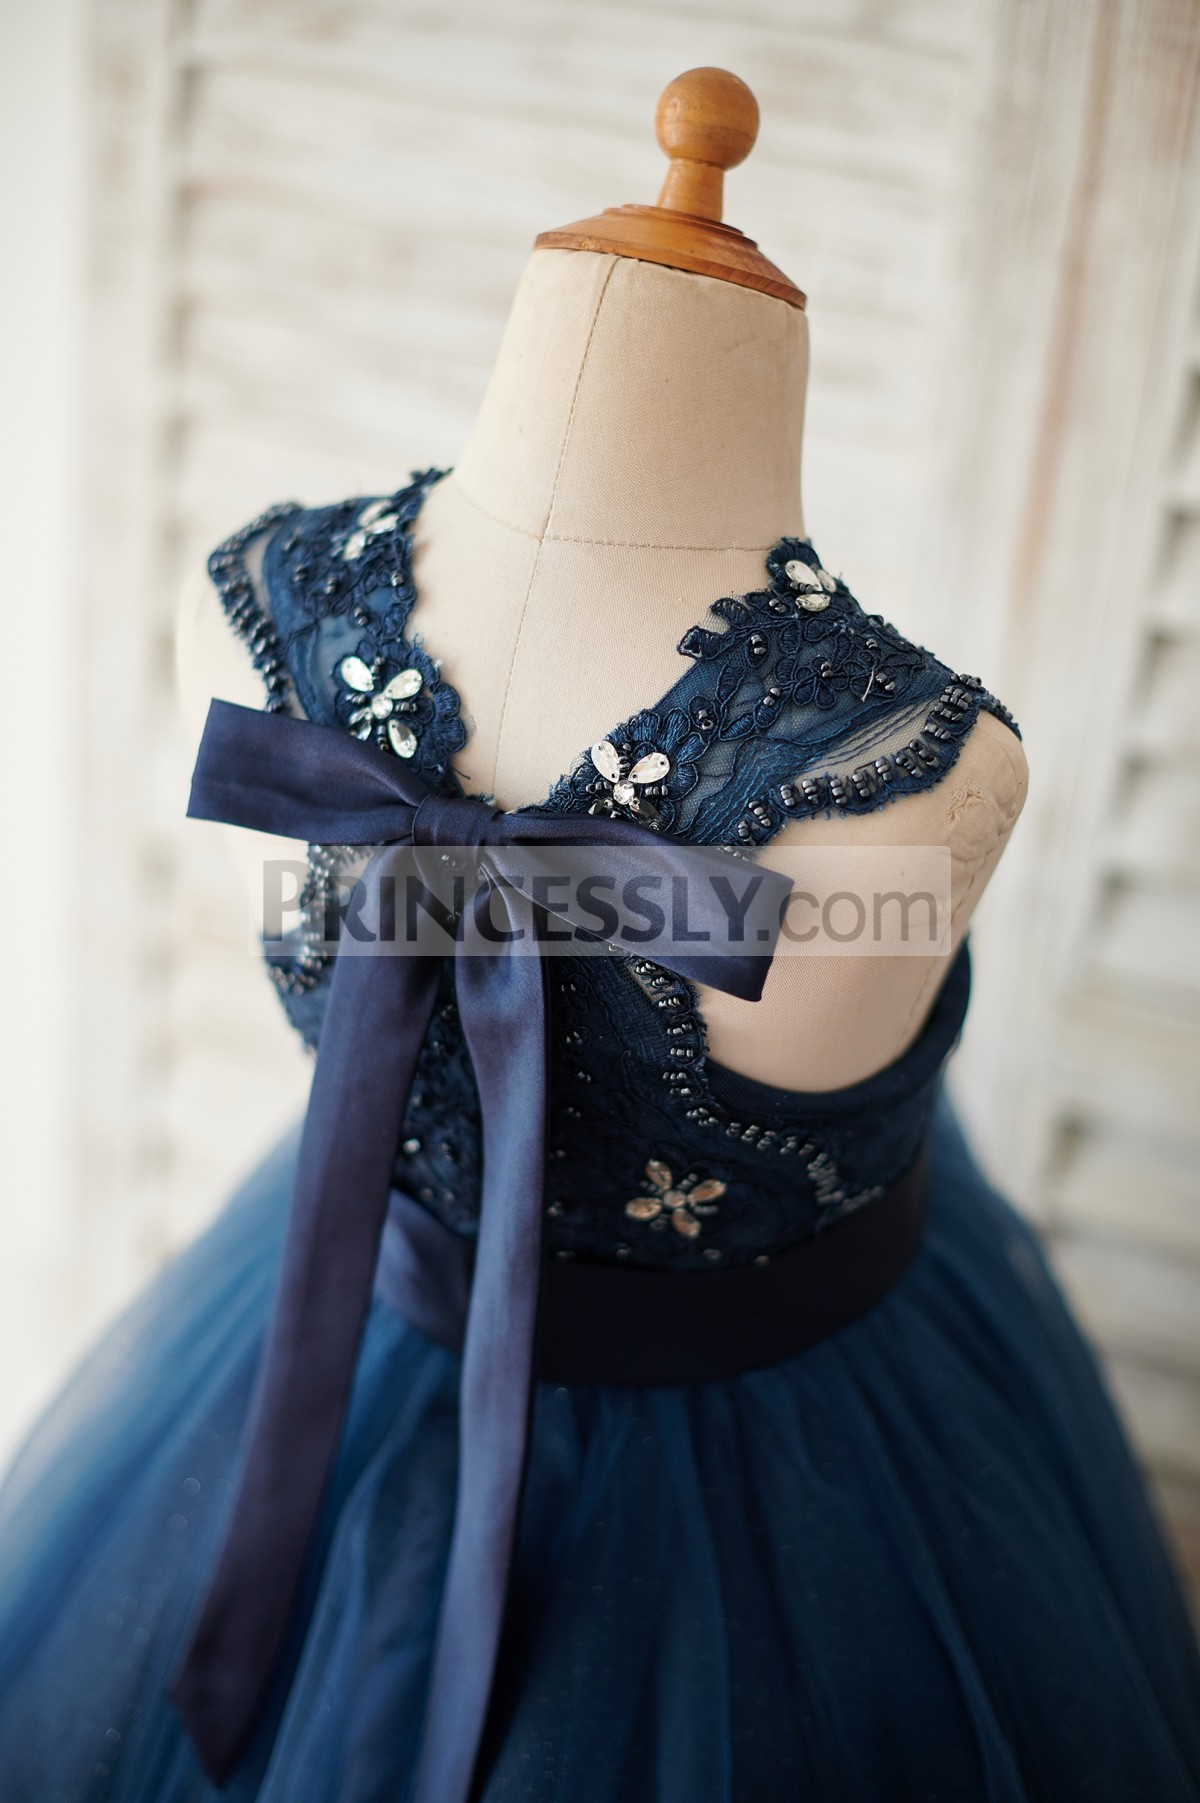 Lace cross back with a bowknot